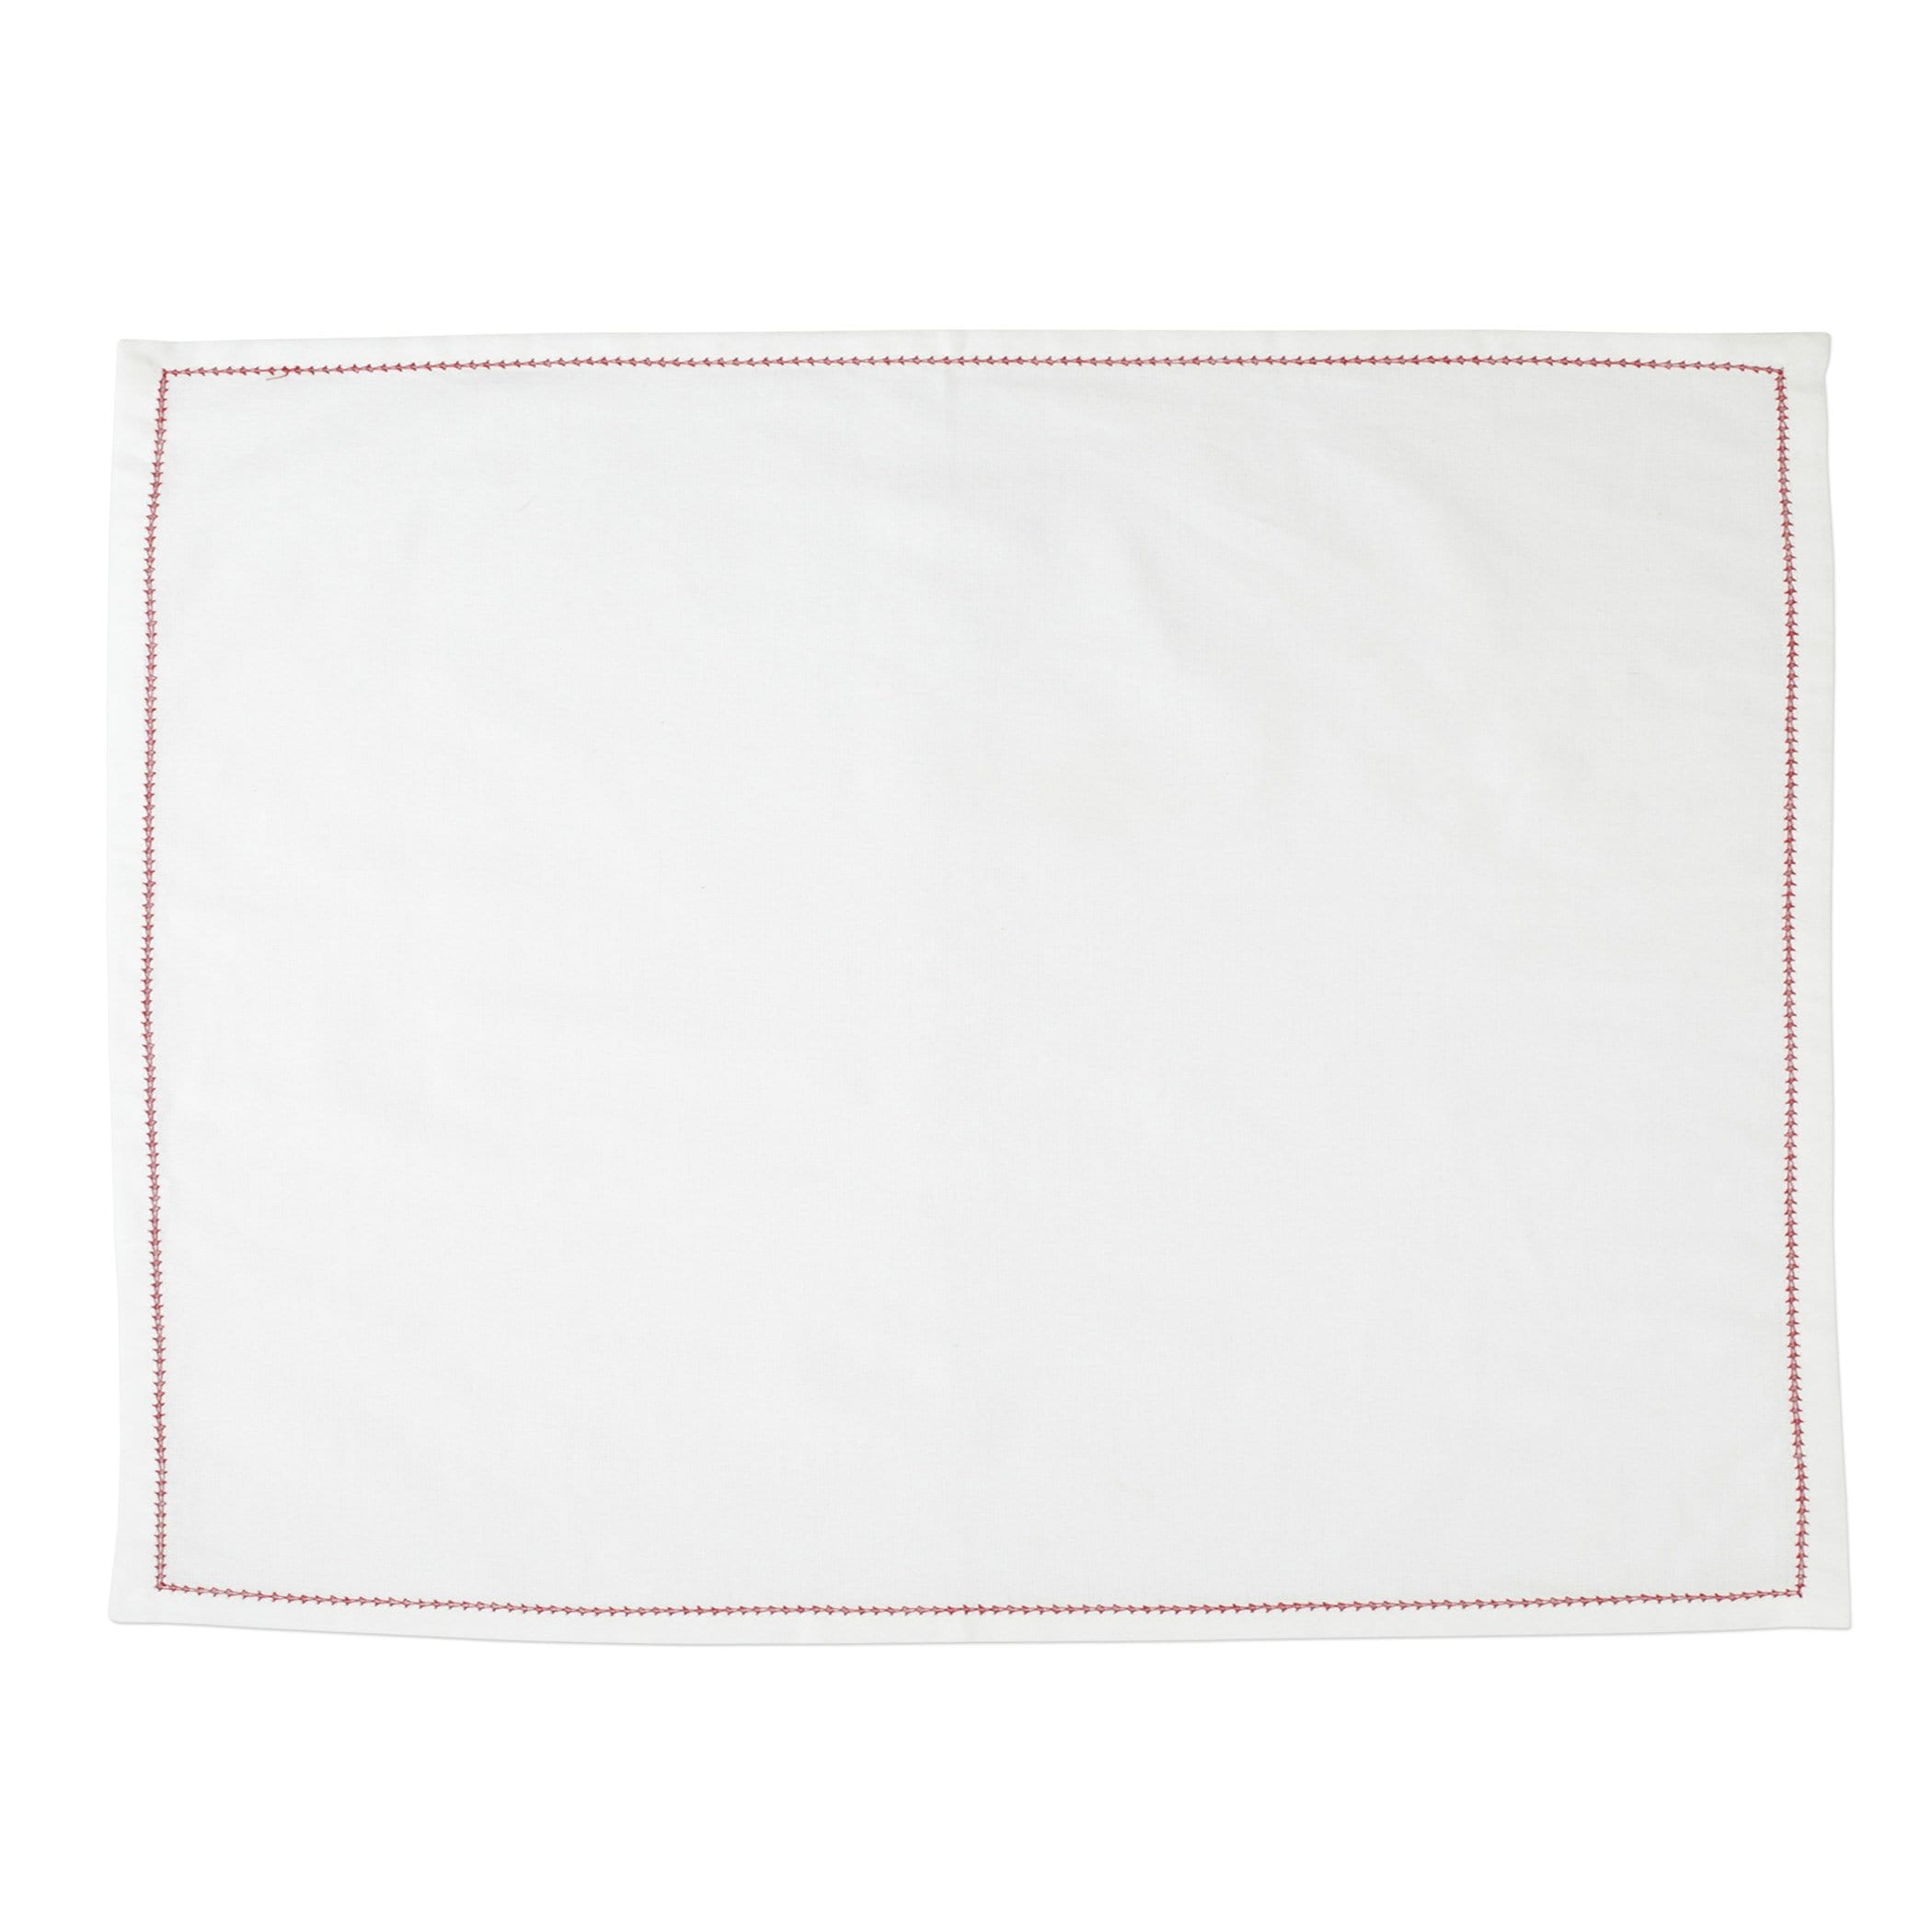 Vietri Cotone Linens Placemats with Stitching - Ivory & Red - Set of 4